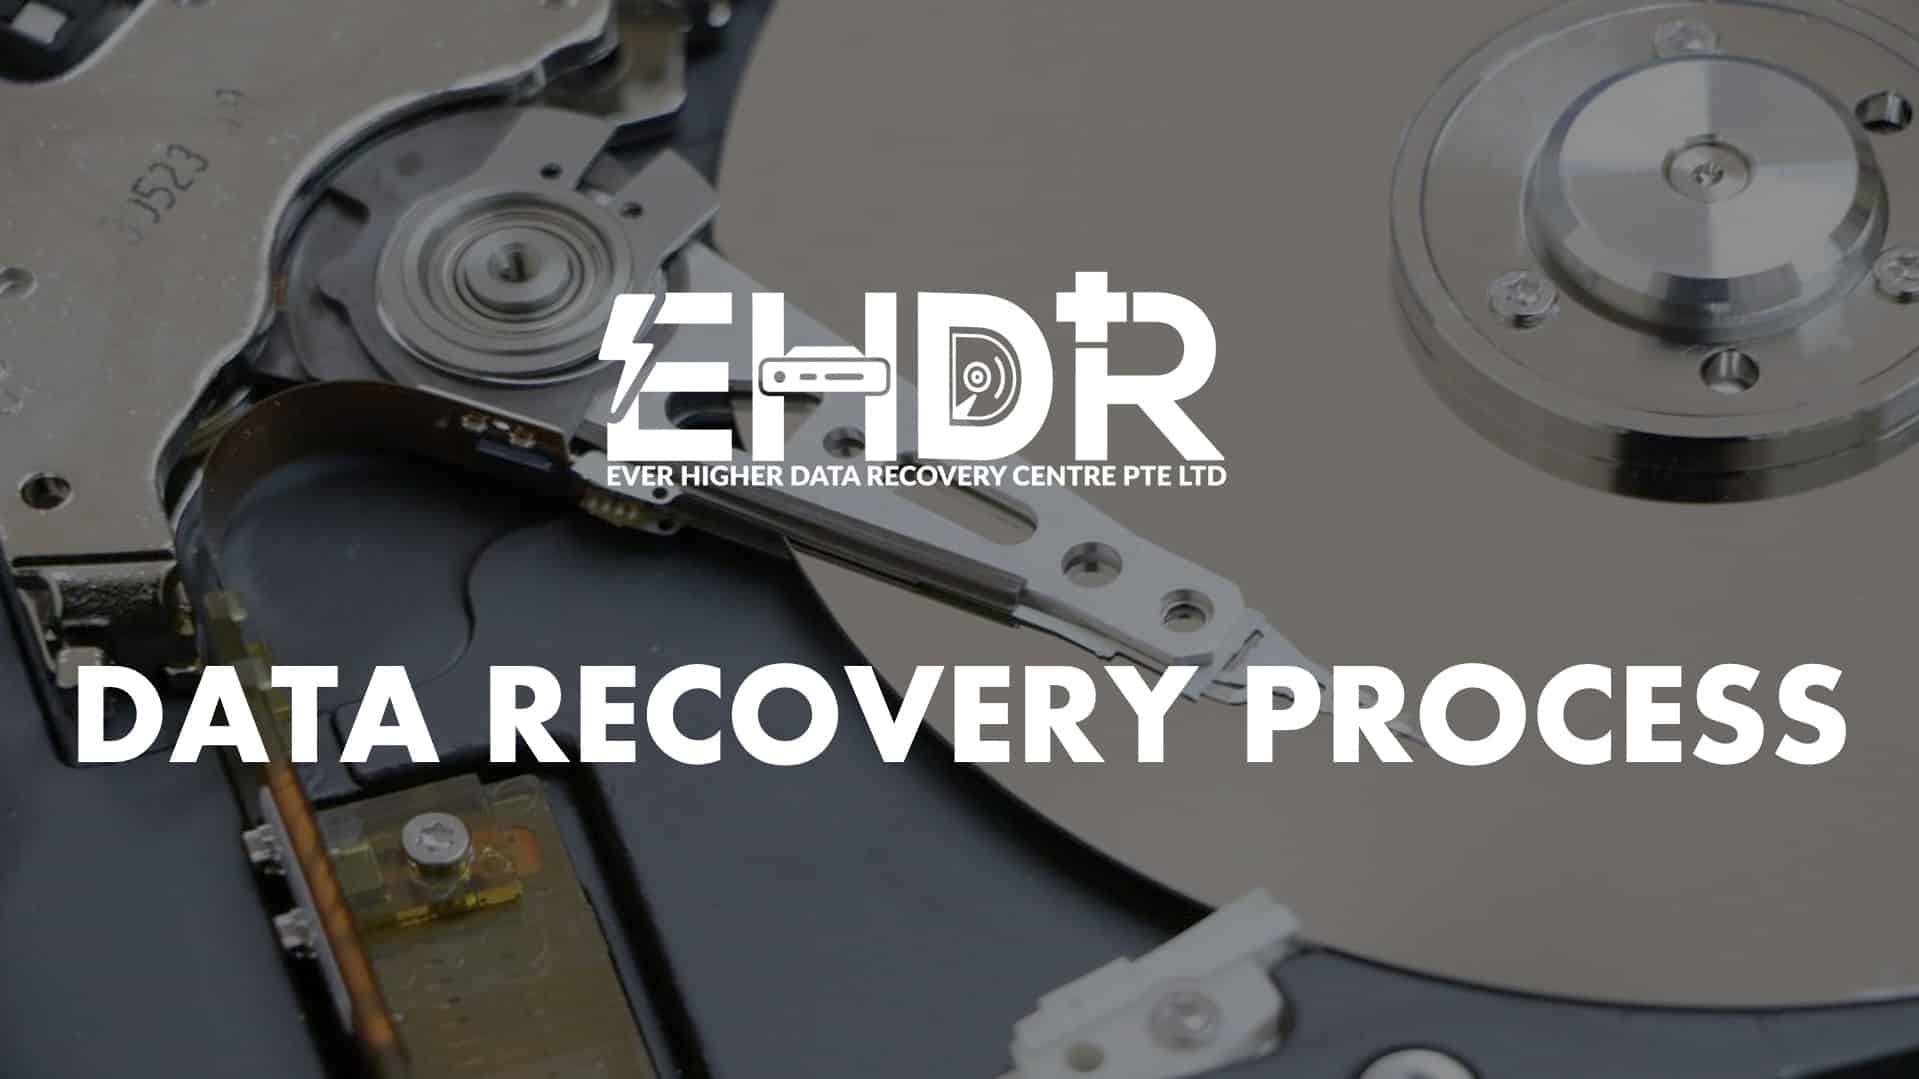 EHDR Recovery Process